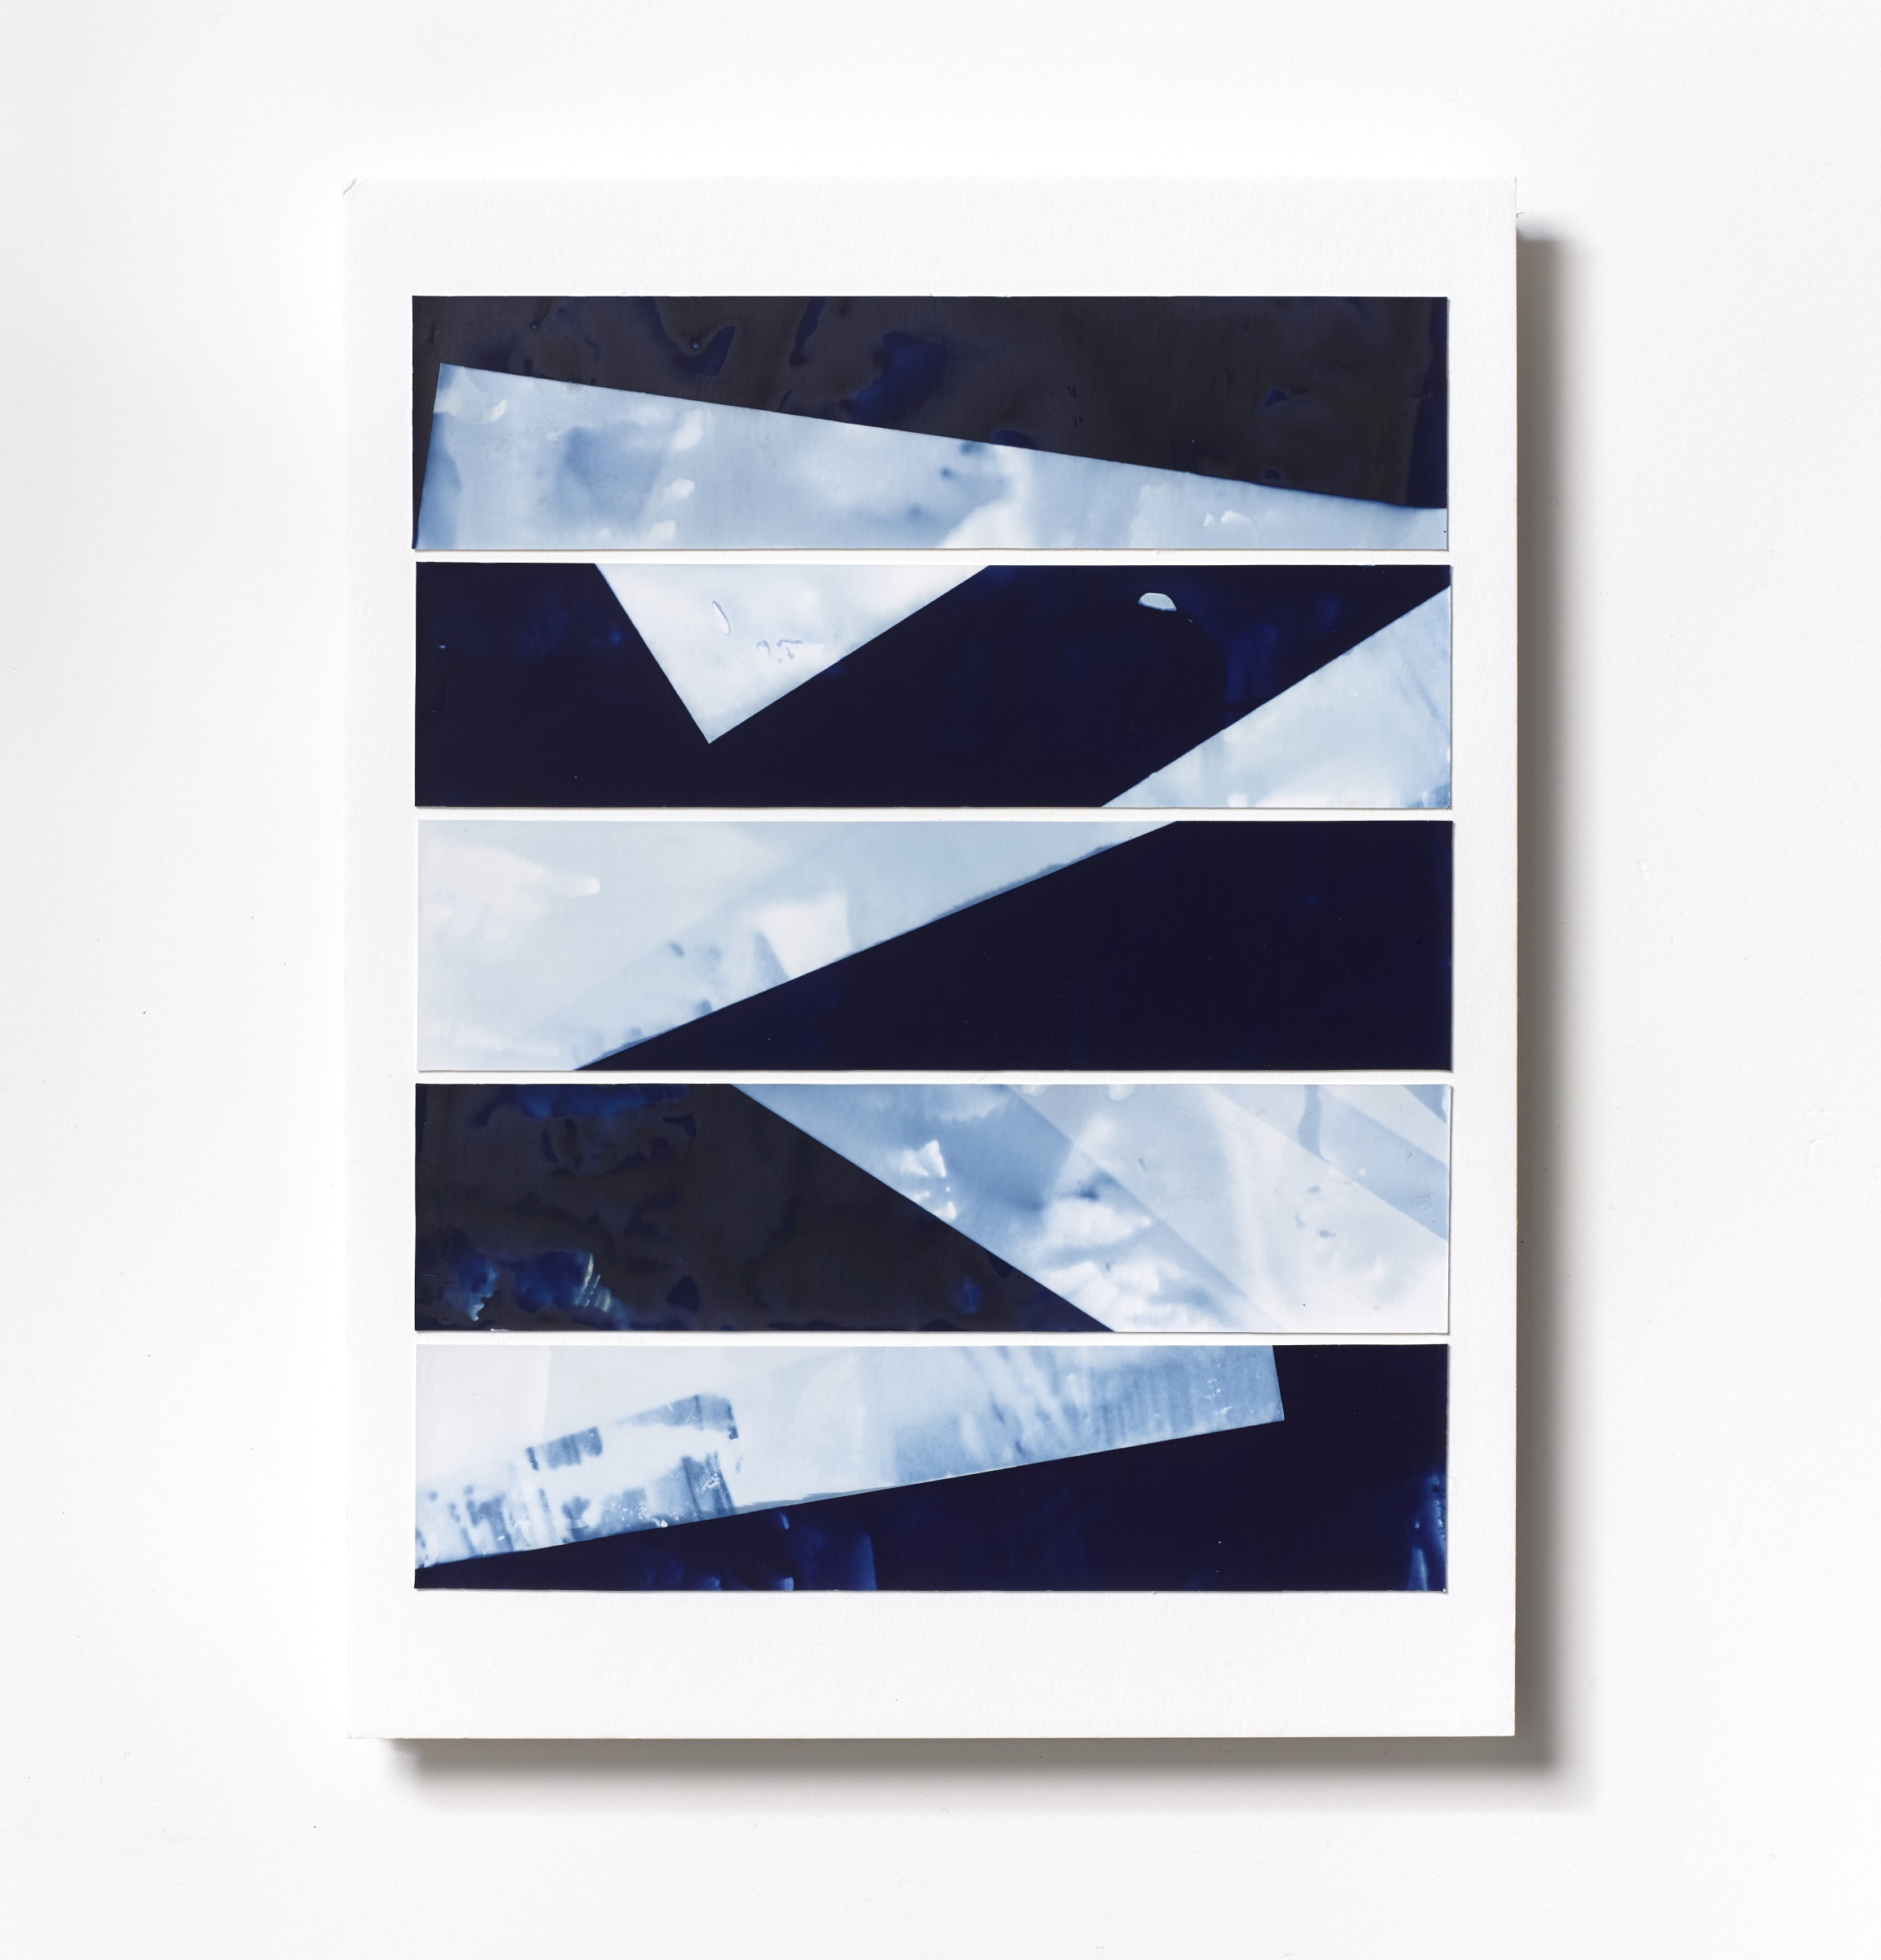 "<span class=""link fancybox-details-link""><a href=""/content/feature/120/artworks564/"">View Detail Page</a></span><div class=""medium"">Cyanotype Collage of five handpainted 1 3/4"" x 7 7/8"" cyanotype photograms on a 12 x 9 inch 8-ply museum board<br /> Print only<br /> Unique</div> <div class=""dimensions"">30.5 x 22.9 cm<br /> 12 x 9 in</div>"